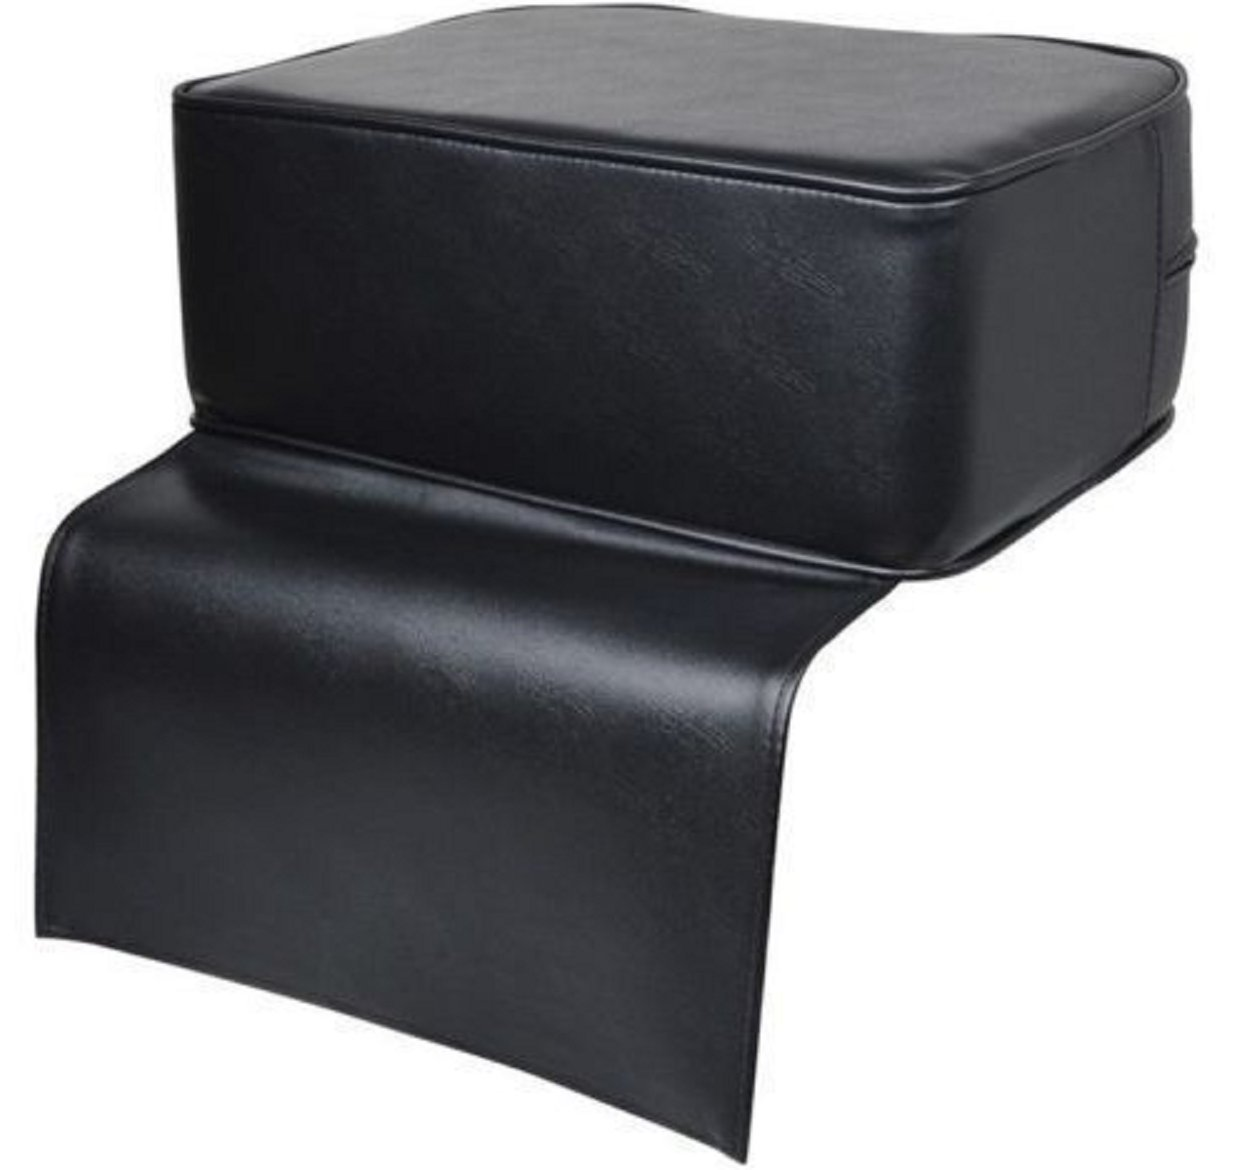 Black Cushion Seat Chair Child Booster Seat Toddler Salon Spa Equipment Barber